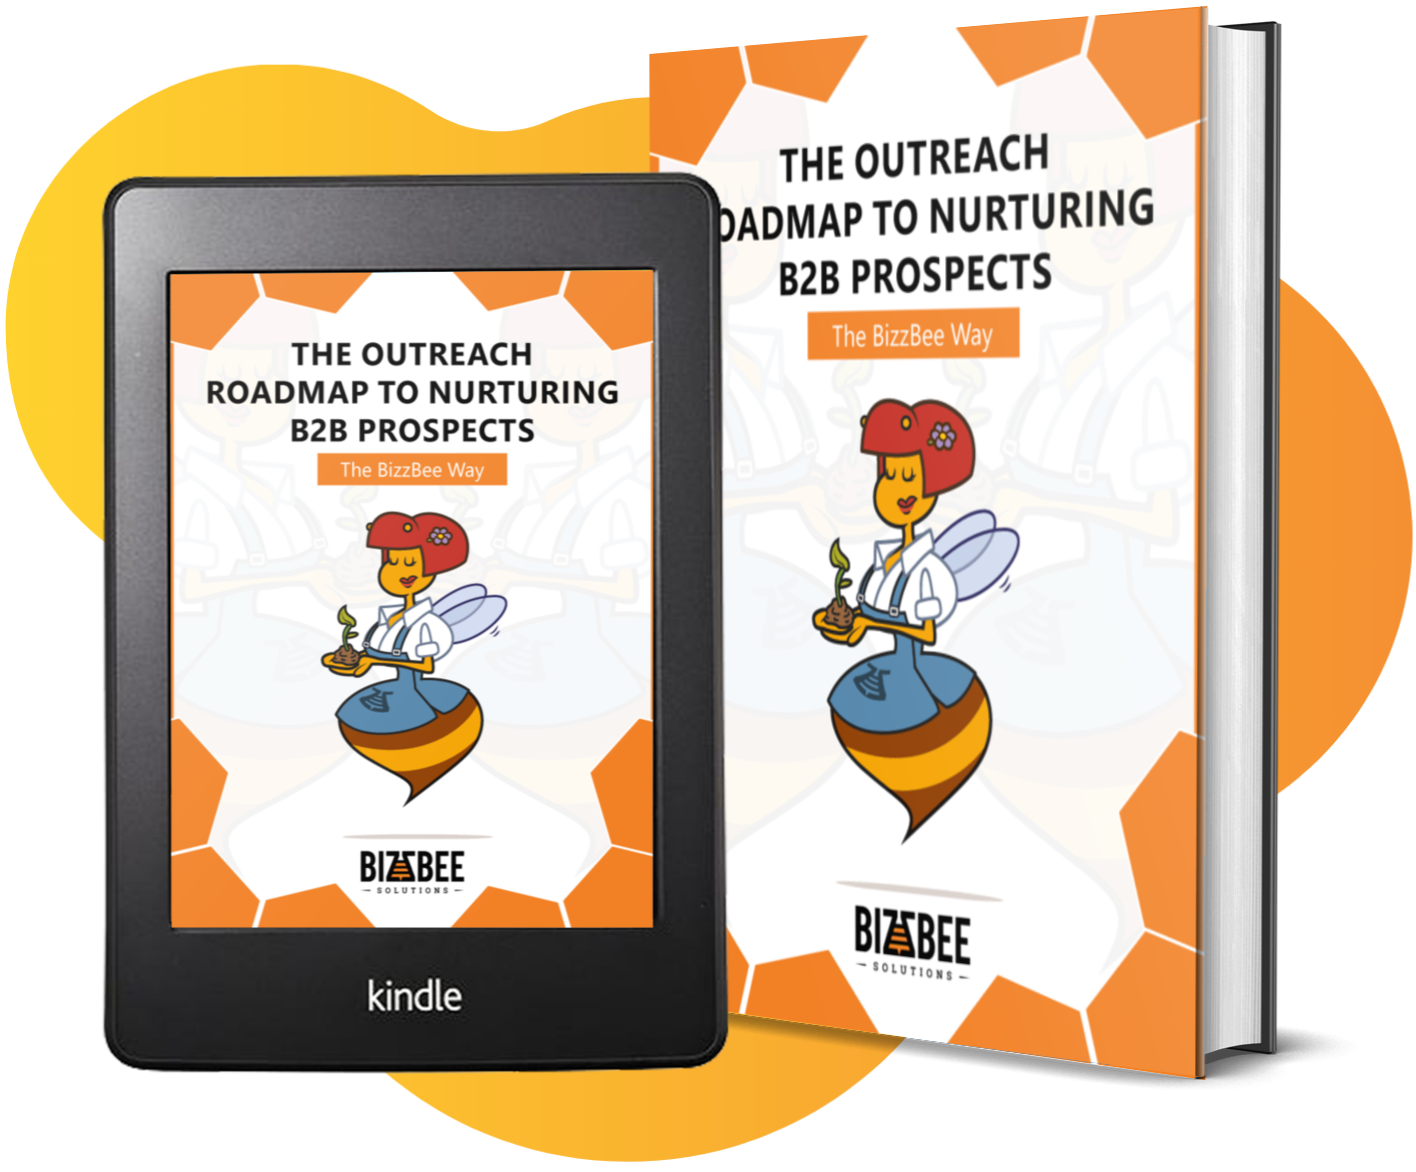 Reengineering LinkedIn Lead Generation - BizzBee's eBook guide mockup on a tablet and physical book.